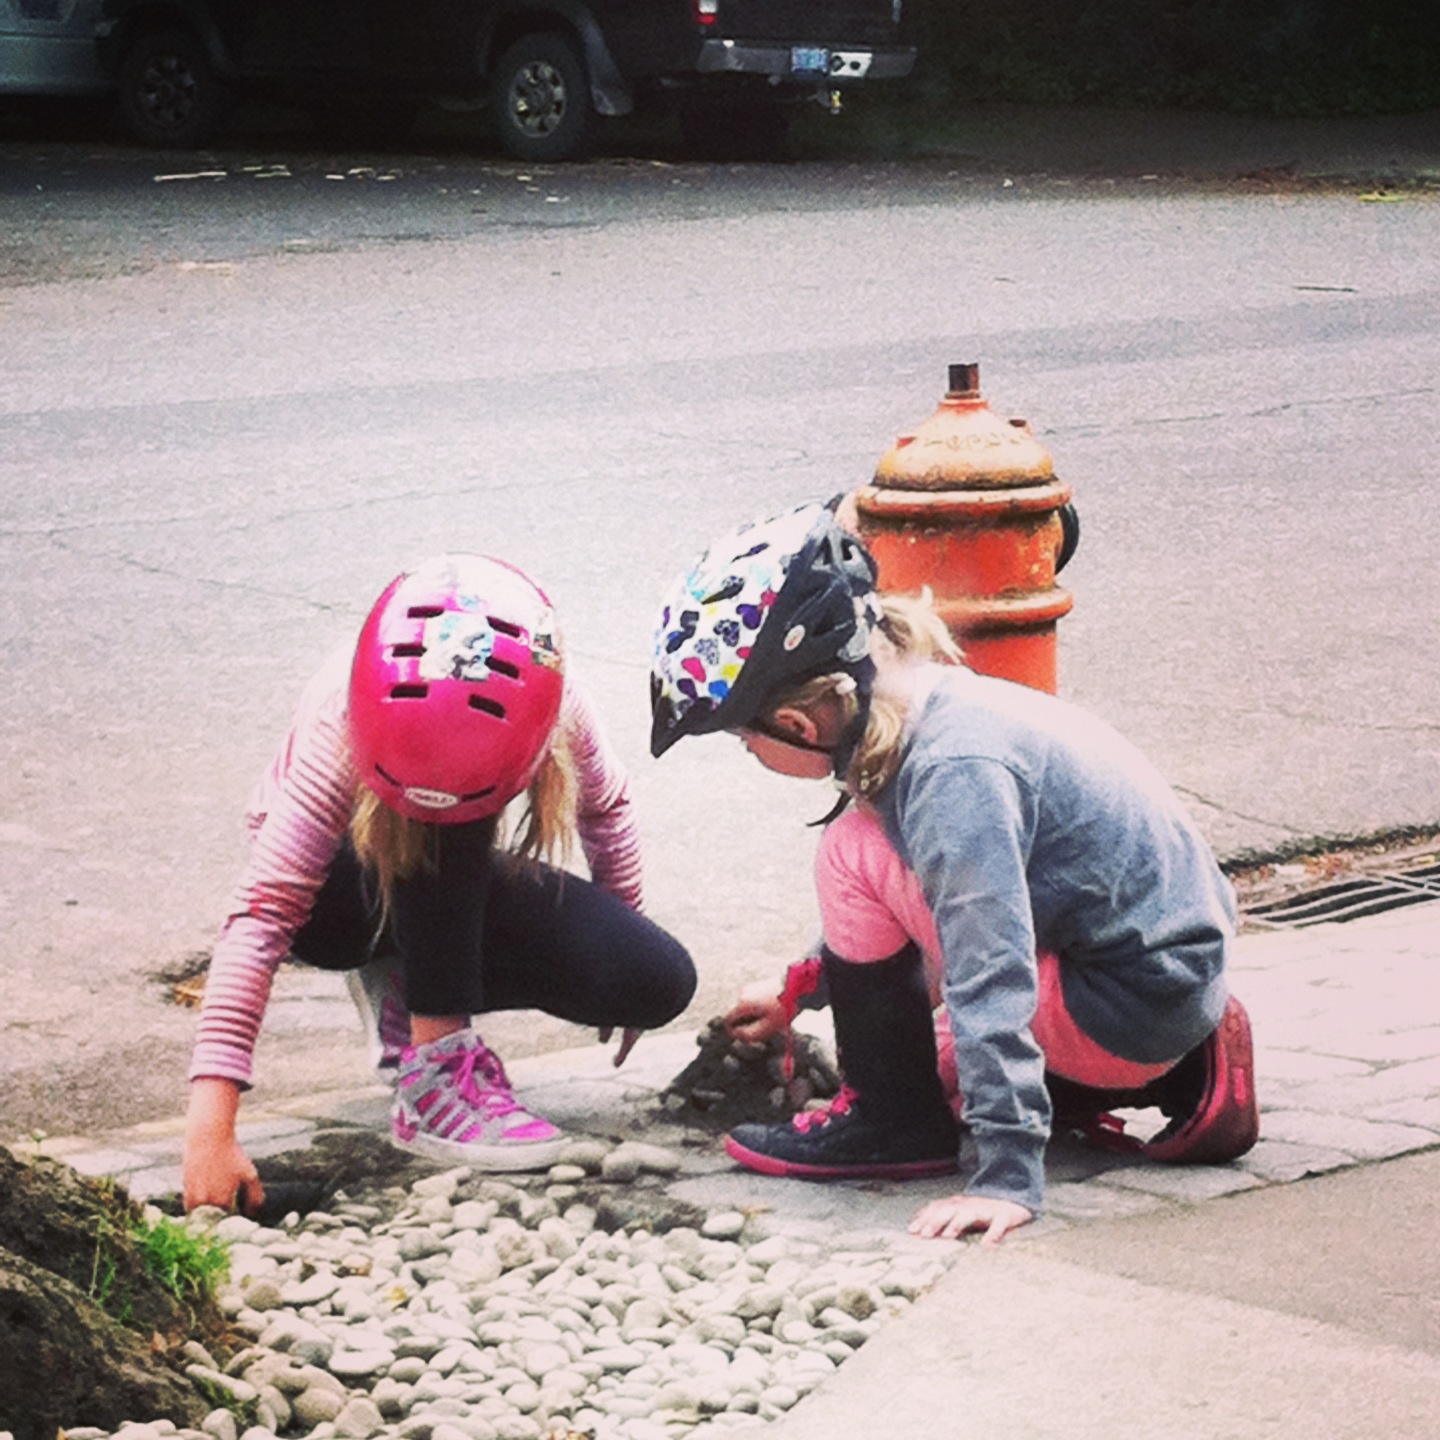 A recent urban observation of mine: two girls passing the time making a dirt mound over a toy horse.